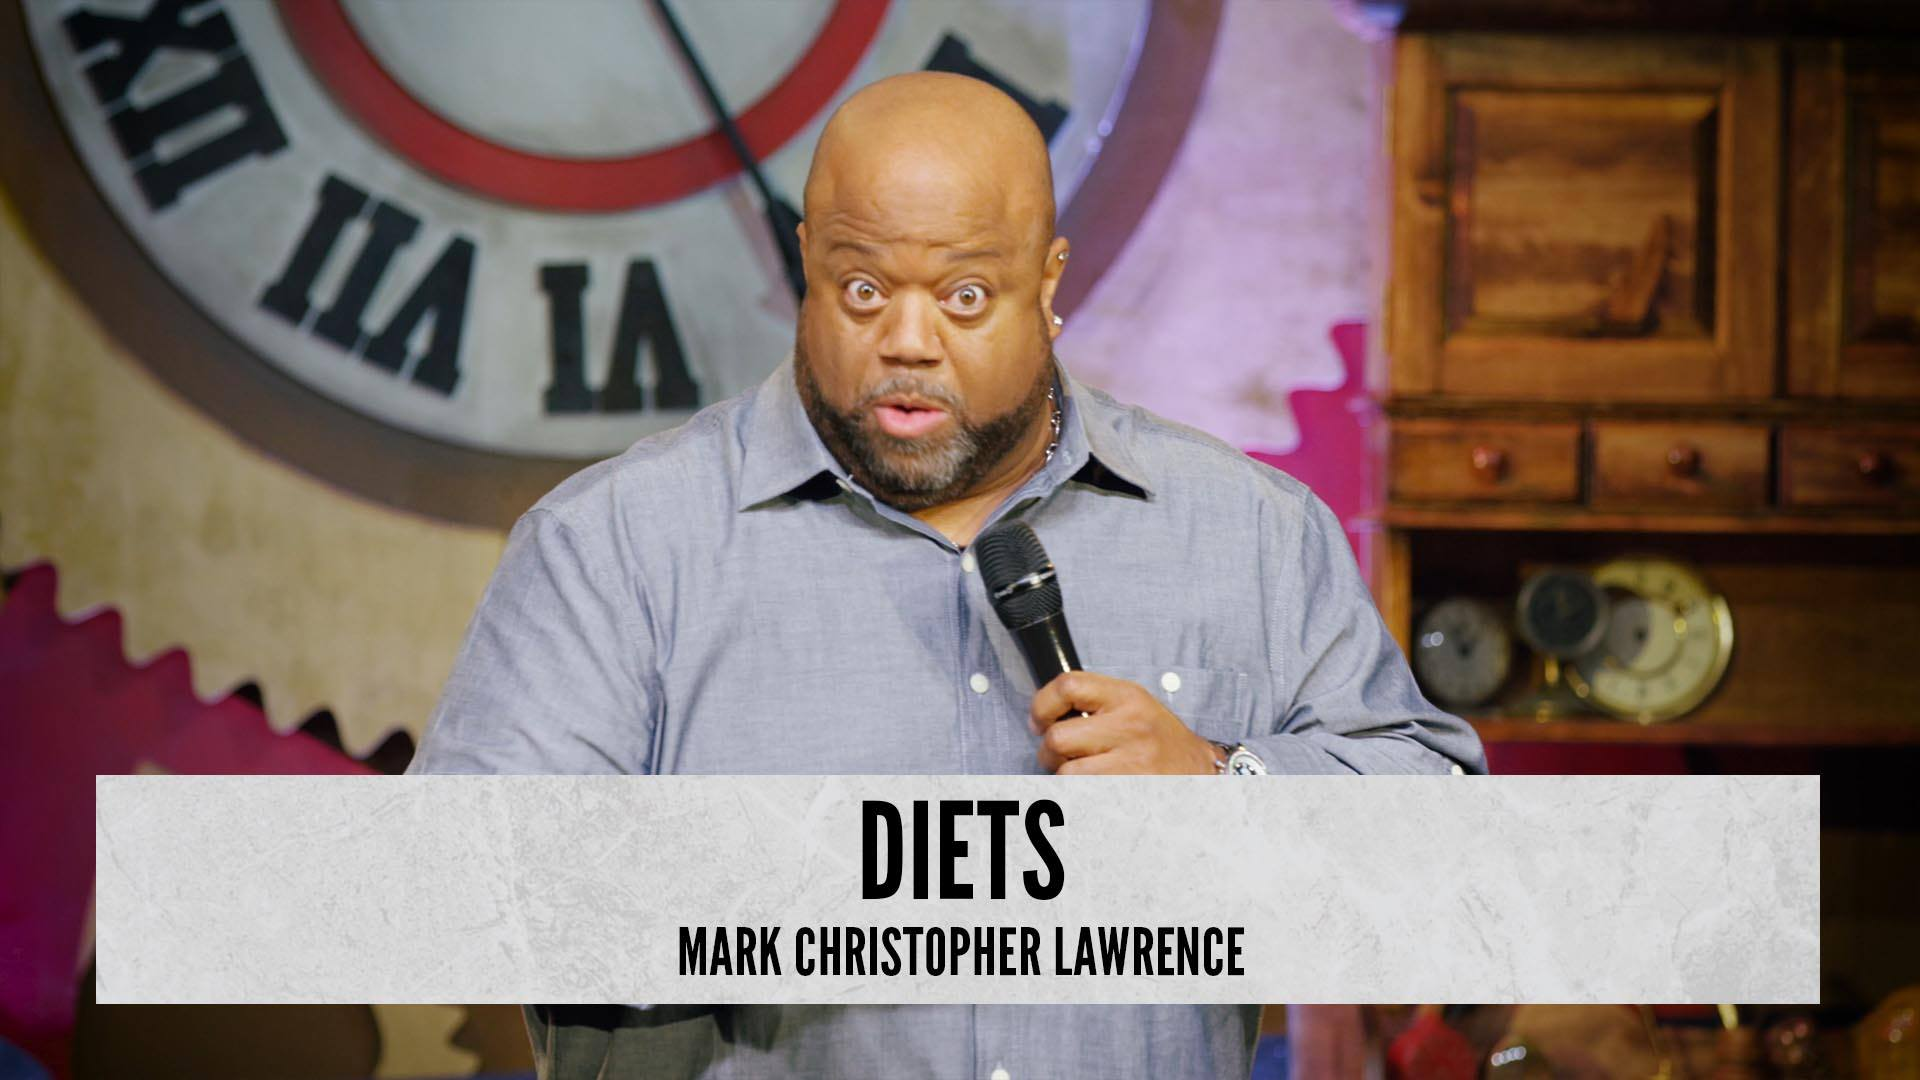 Diets - Mark Christopher Lawrence